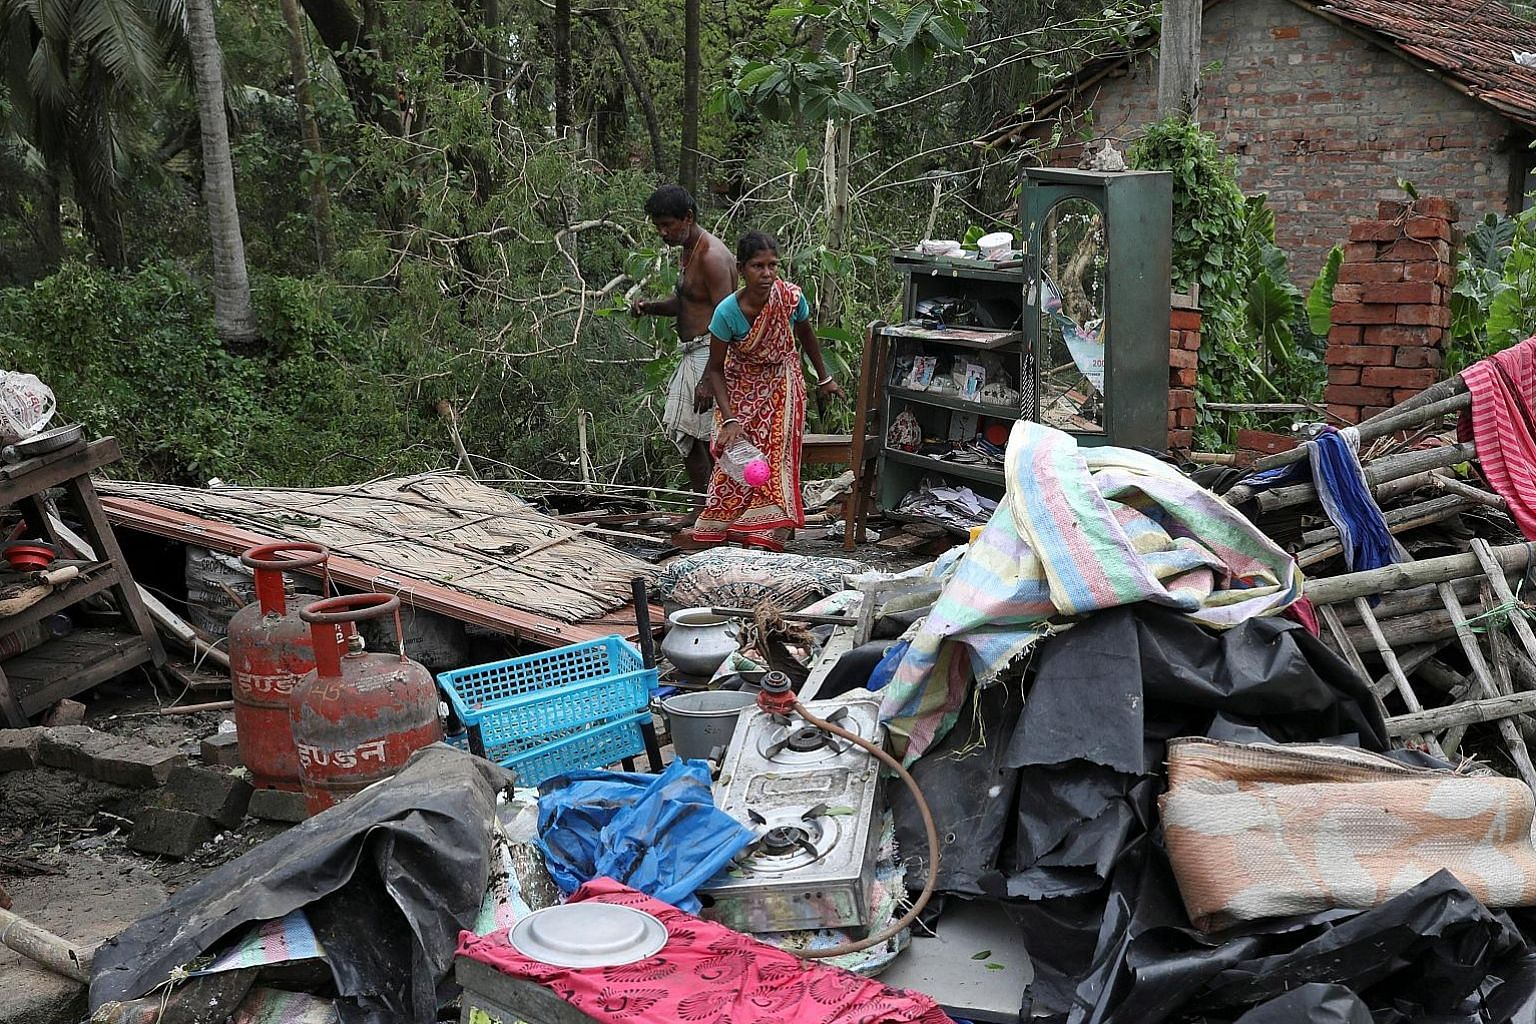 Residents salvaging their belongings from the rubble of a damaged house in the aftermath of Cyclone Amphan in West Bengal, India, yesterday.